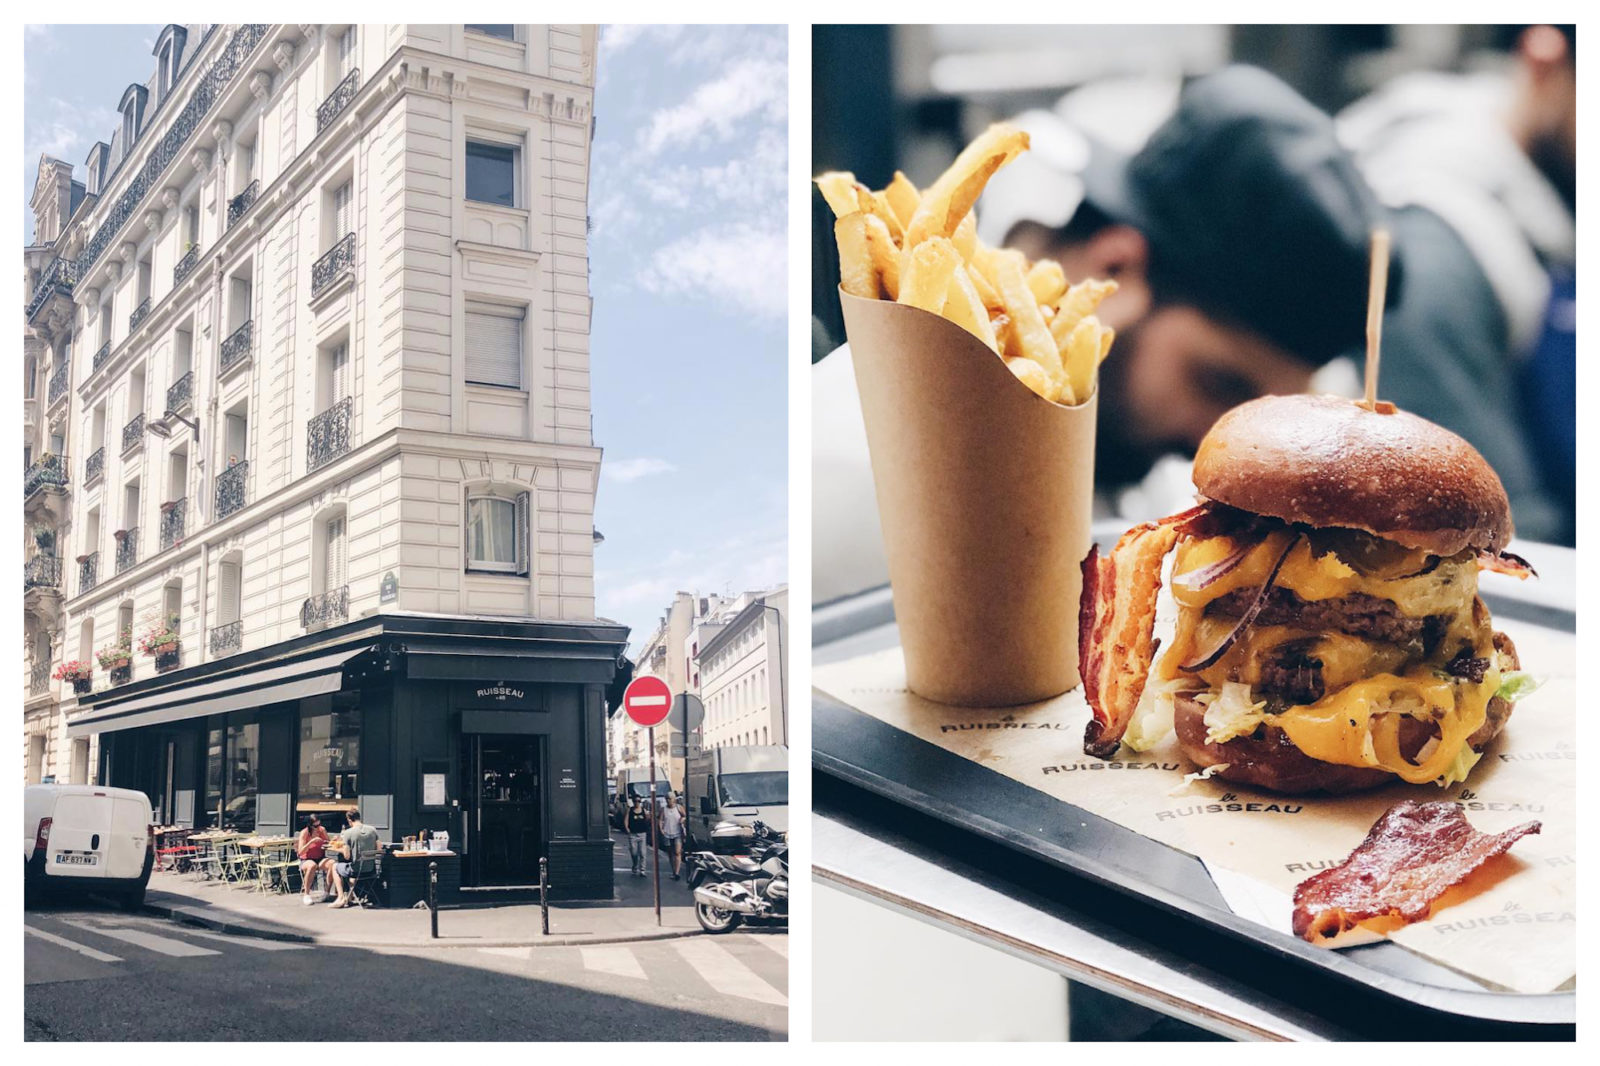 The Best Burgers in Paris can be found at Le Ruisseau in the 18th, slotted in at the bottom of an apartment building (left). Le Ruisseau does bacon, cheese and beef burgers with crispy fries (right).